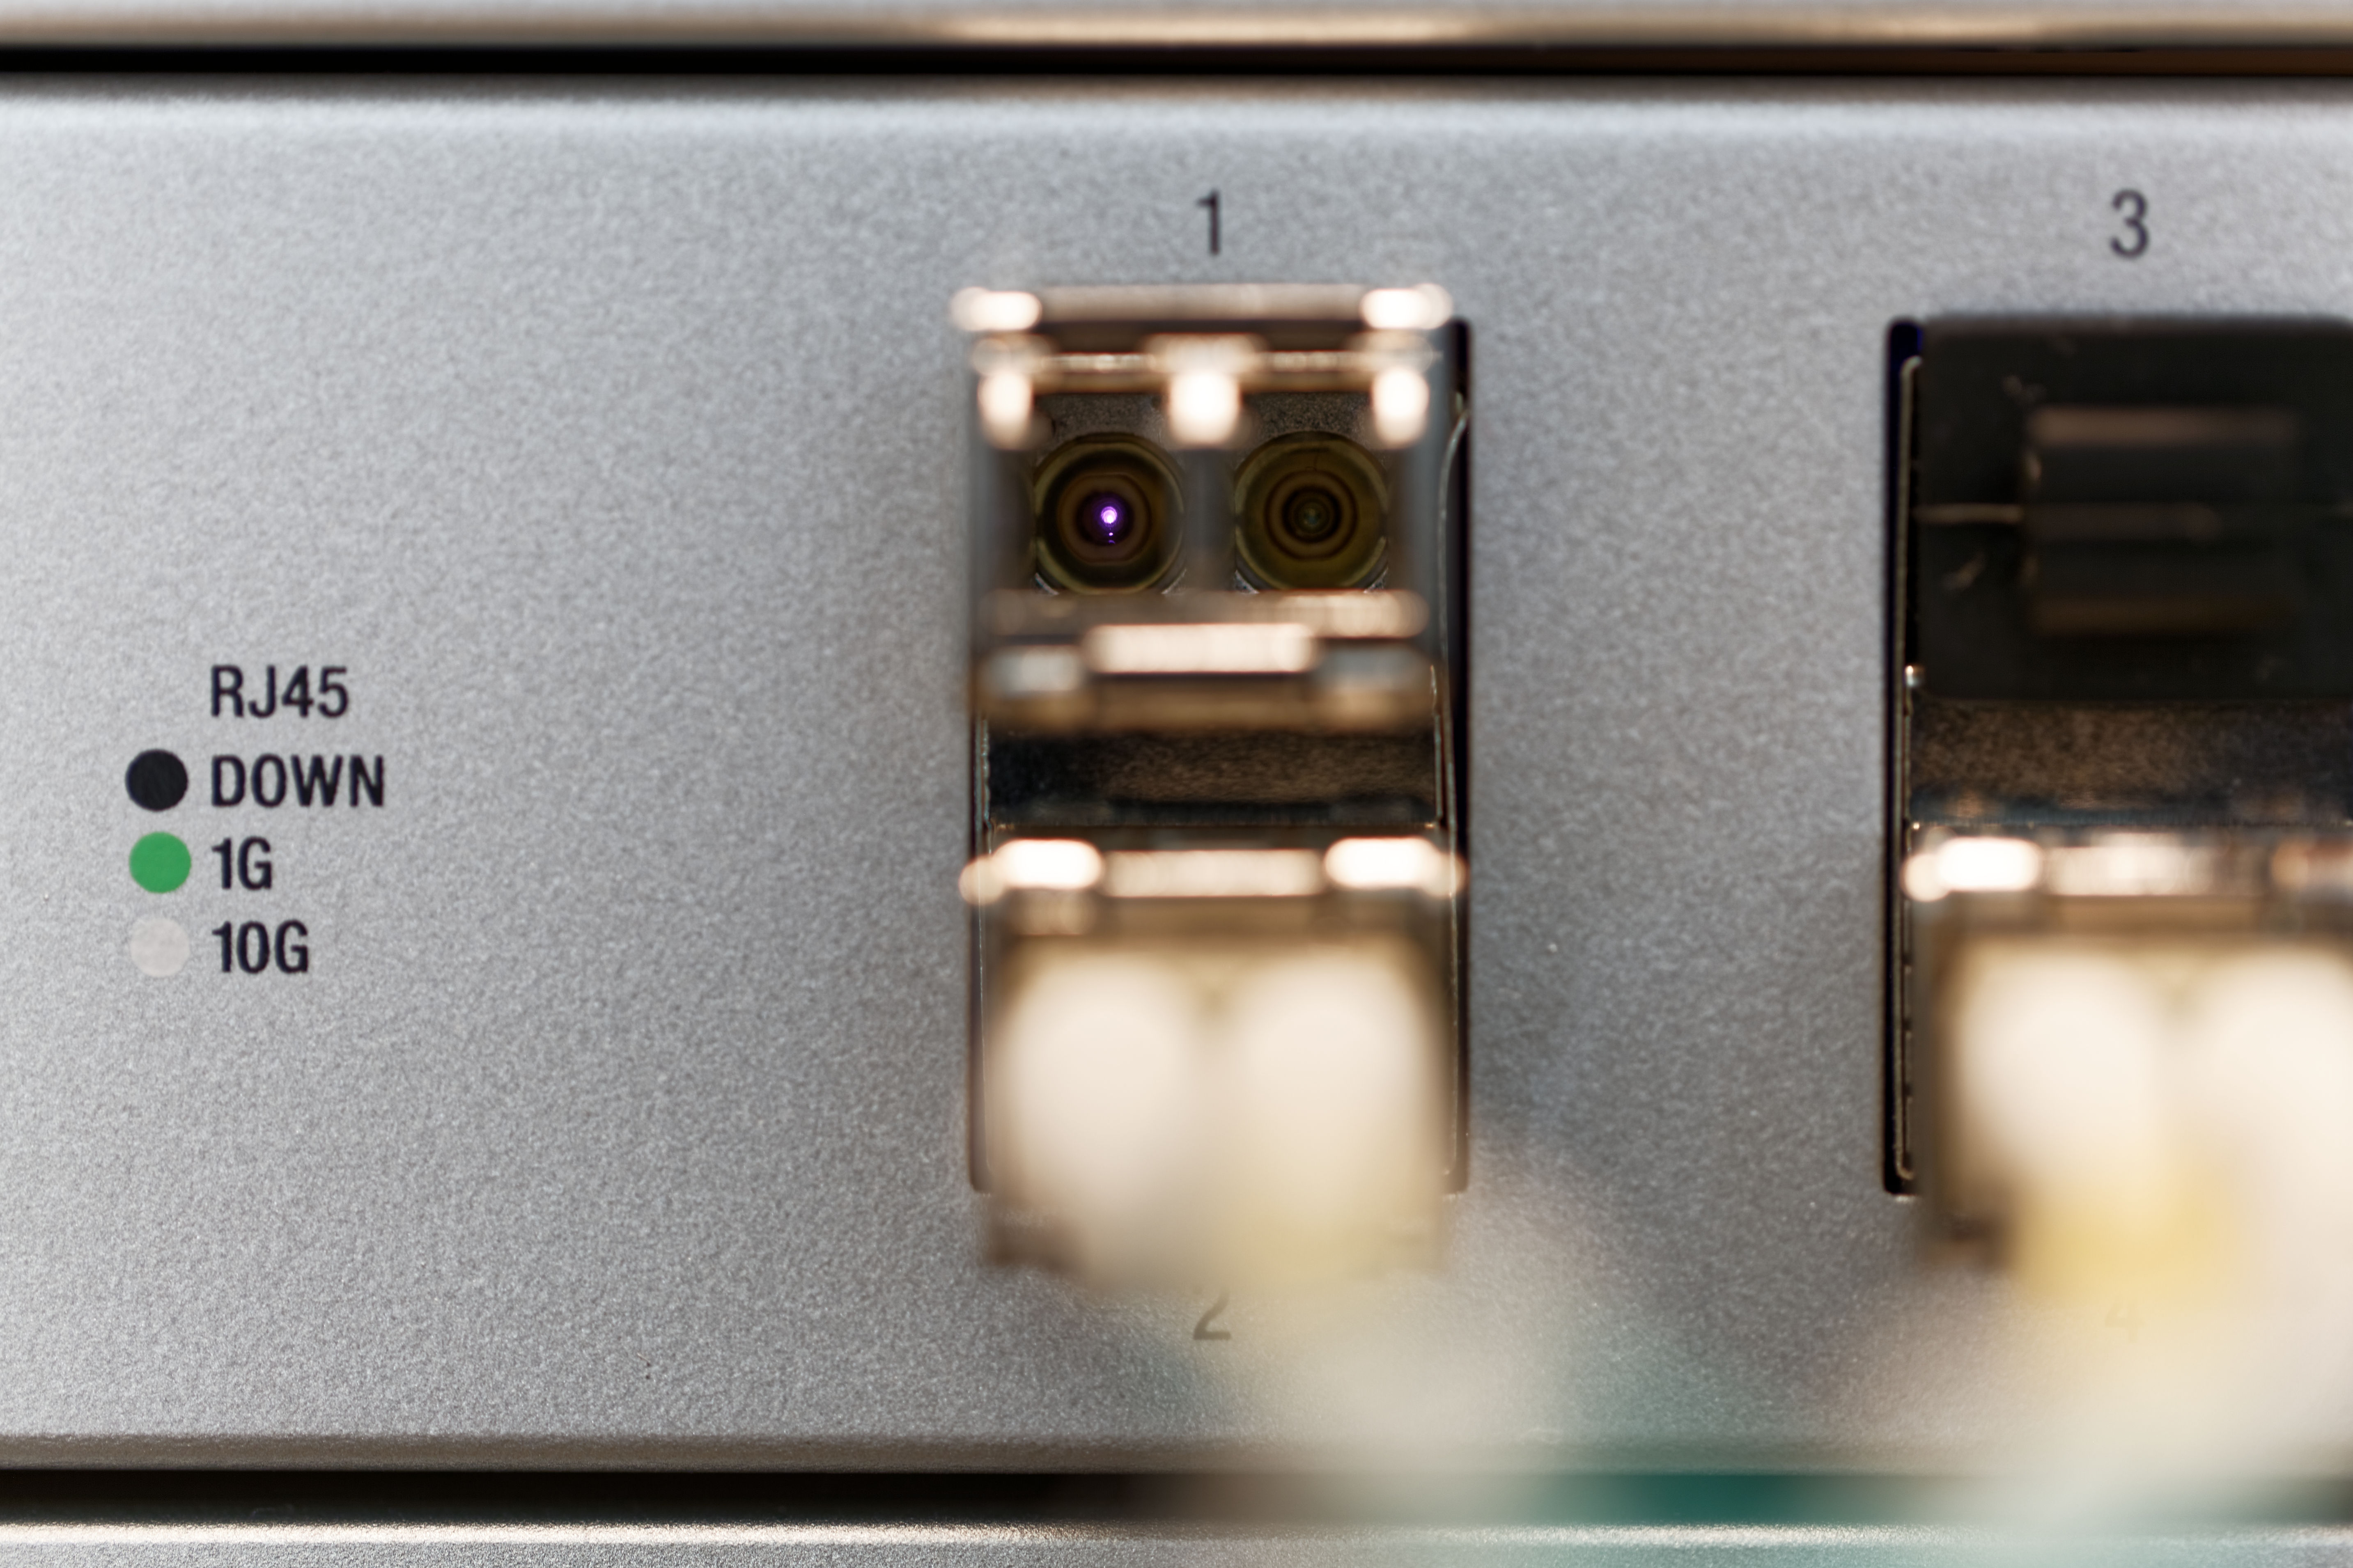 This close up of an SFP+ transceiver module looks like a robot. MEEP MORP.